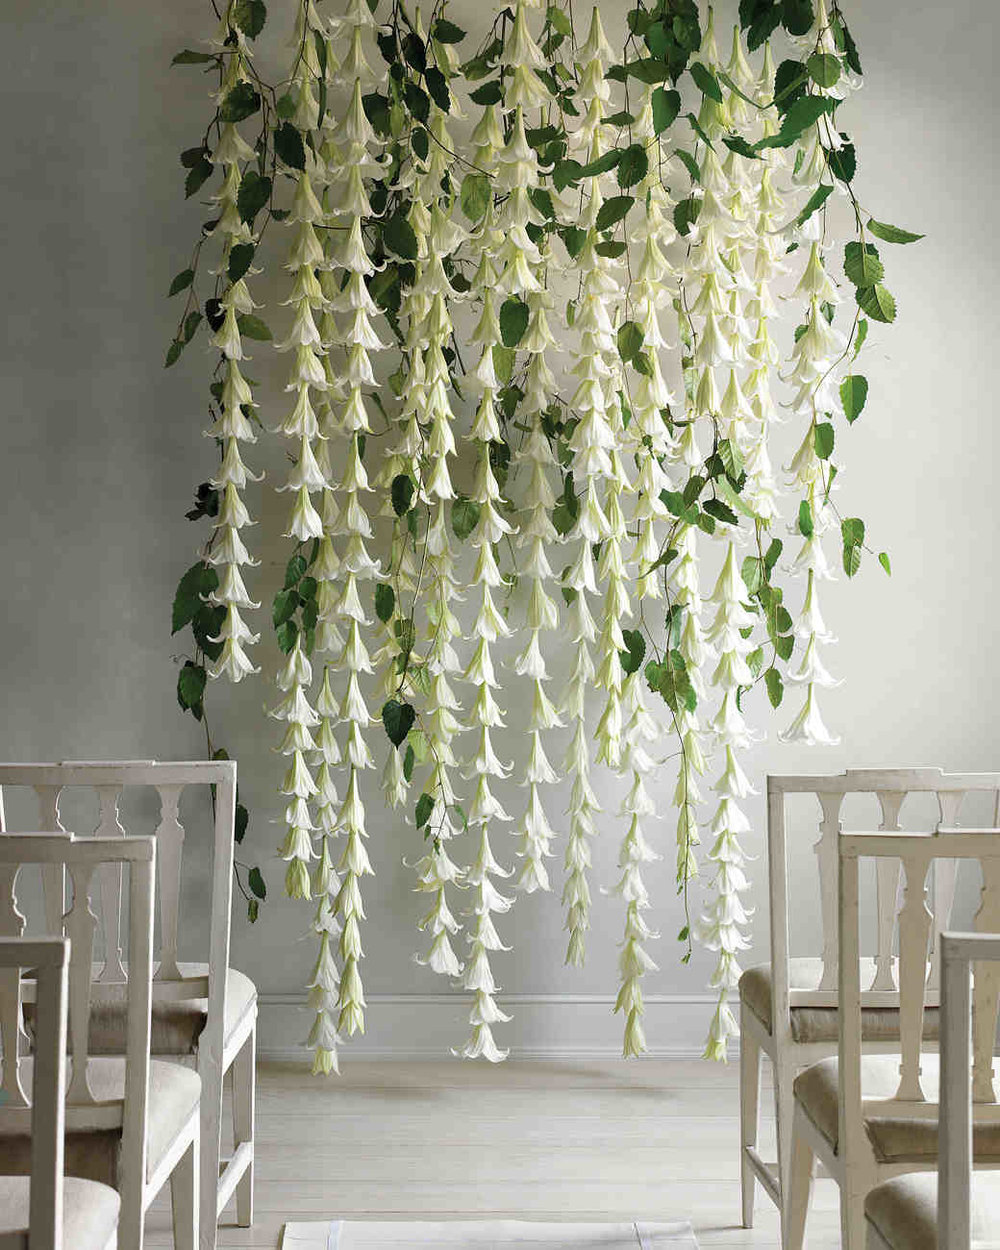 flowerwall-hanginglilies-0615_vert.jpg